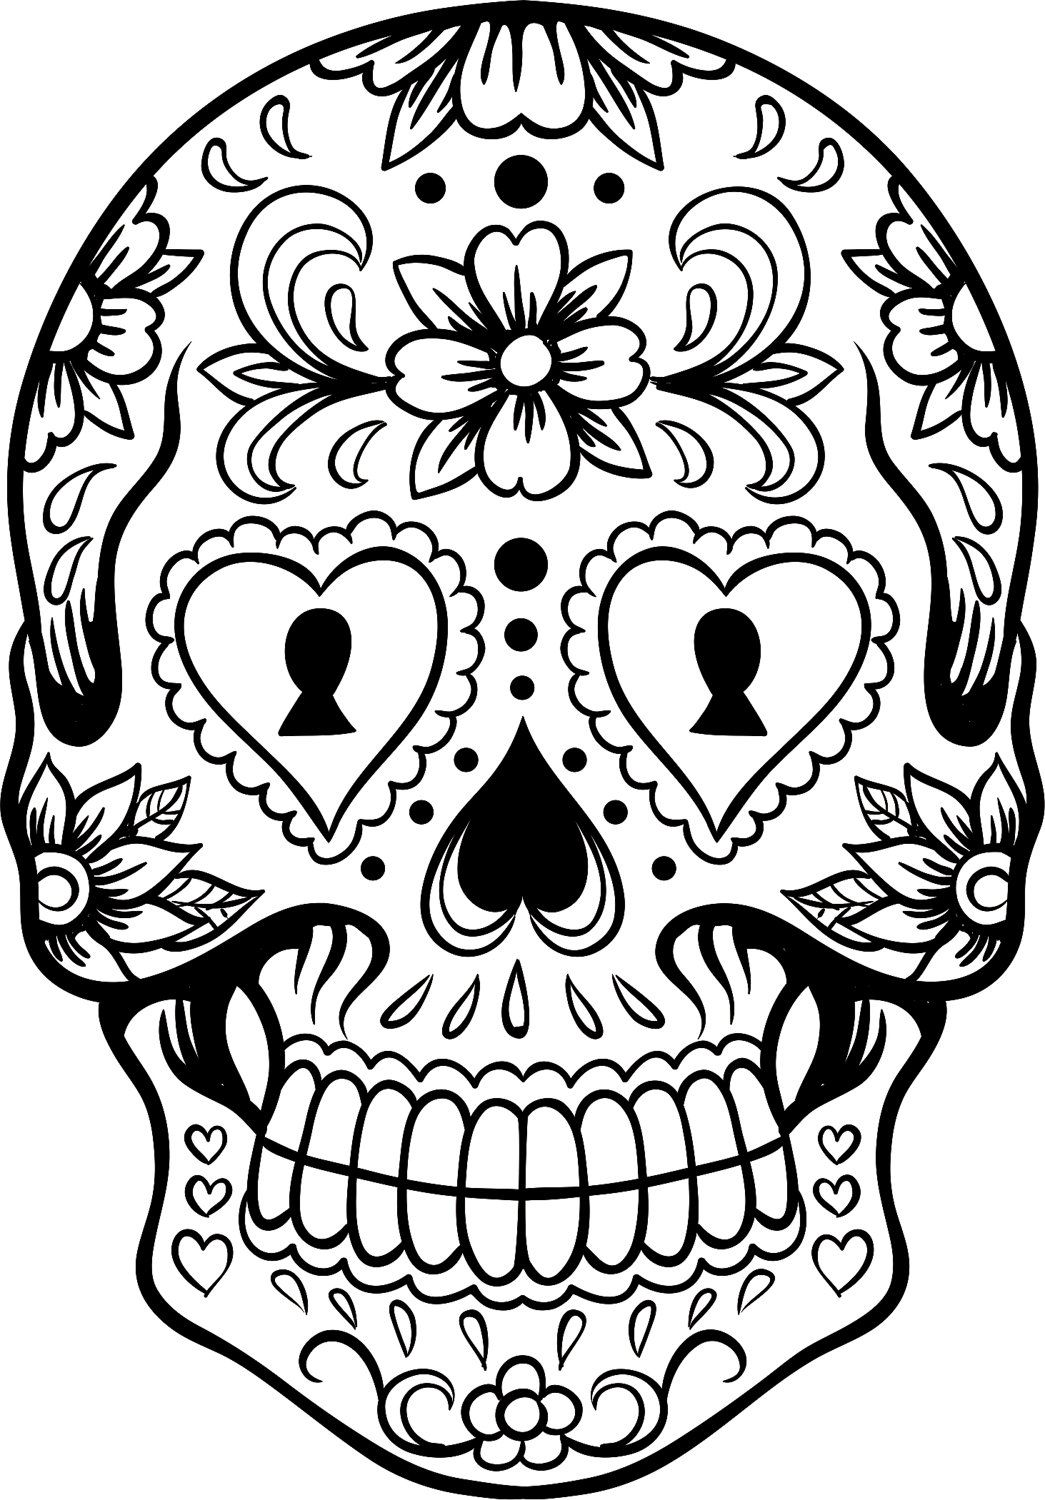 Sugar Skull Version 6 Wall Vinyl Decal Sticker Art Graphic Sticker ...